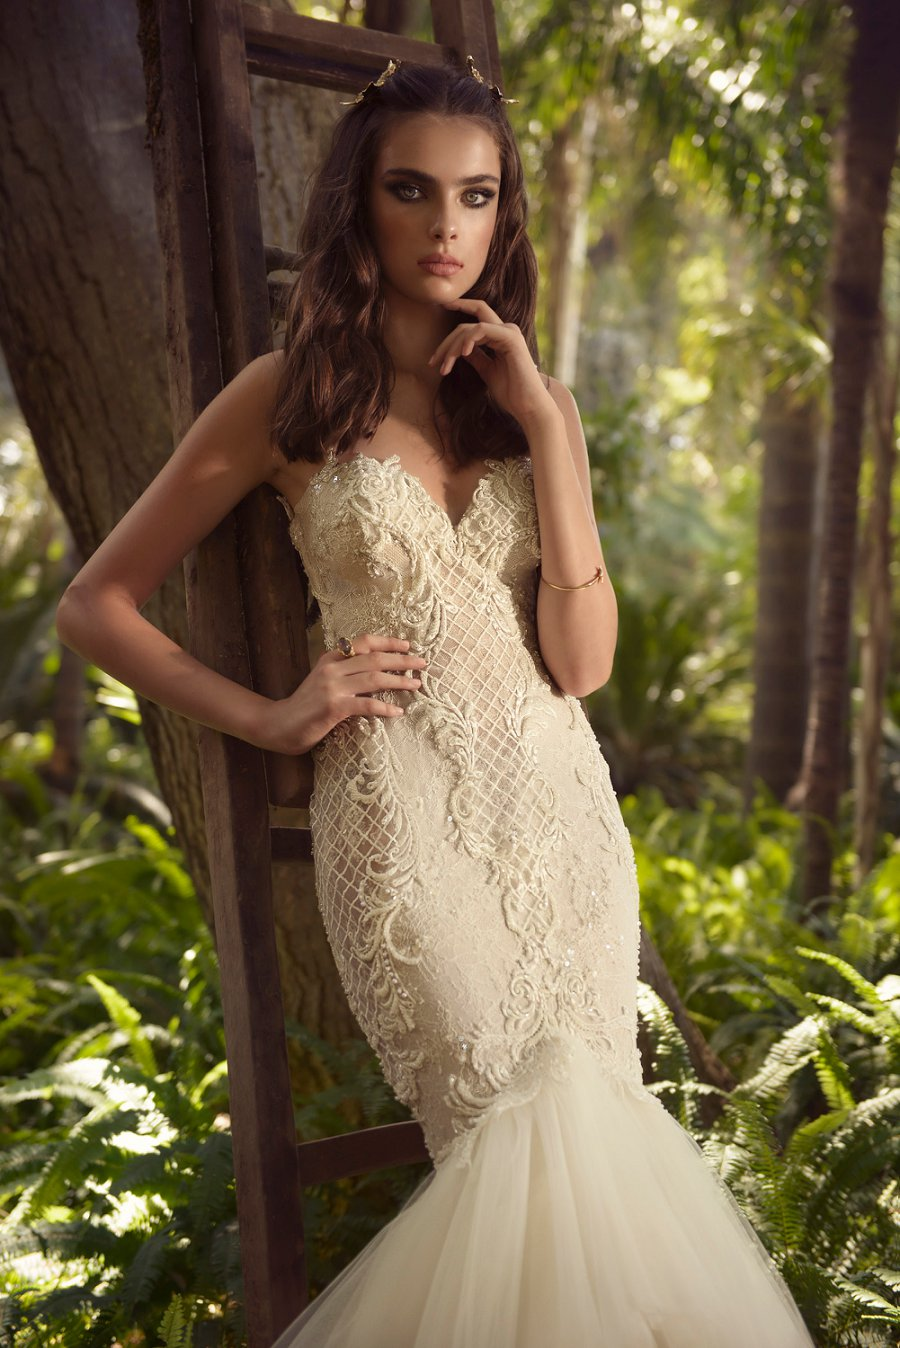 Gorgeously Dreamy Yaki Ravid Wedding Dresses For 2016!